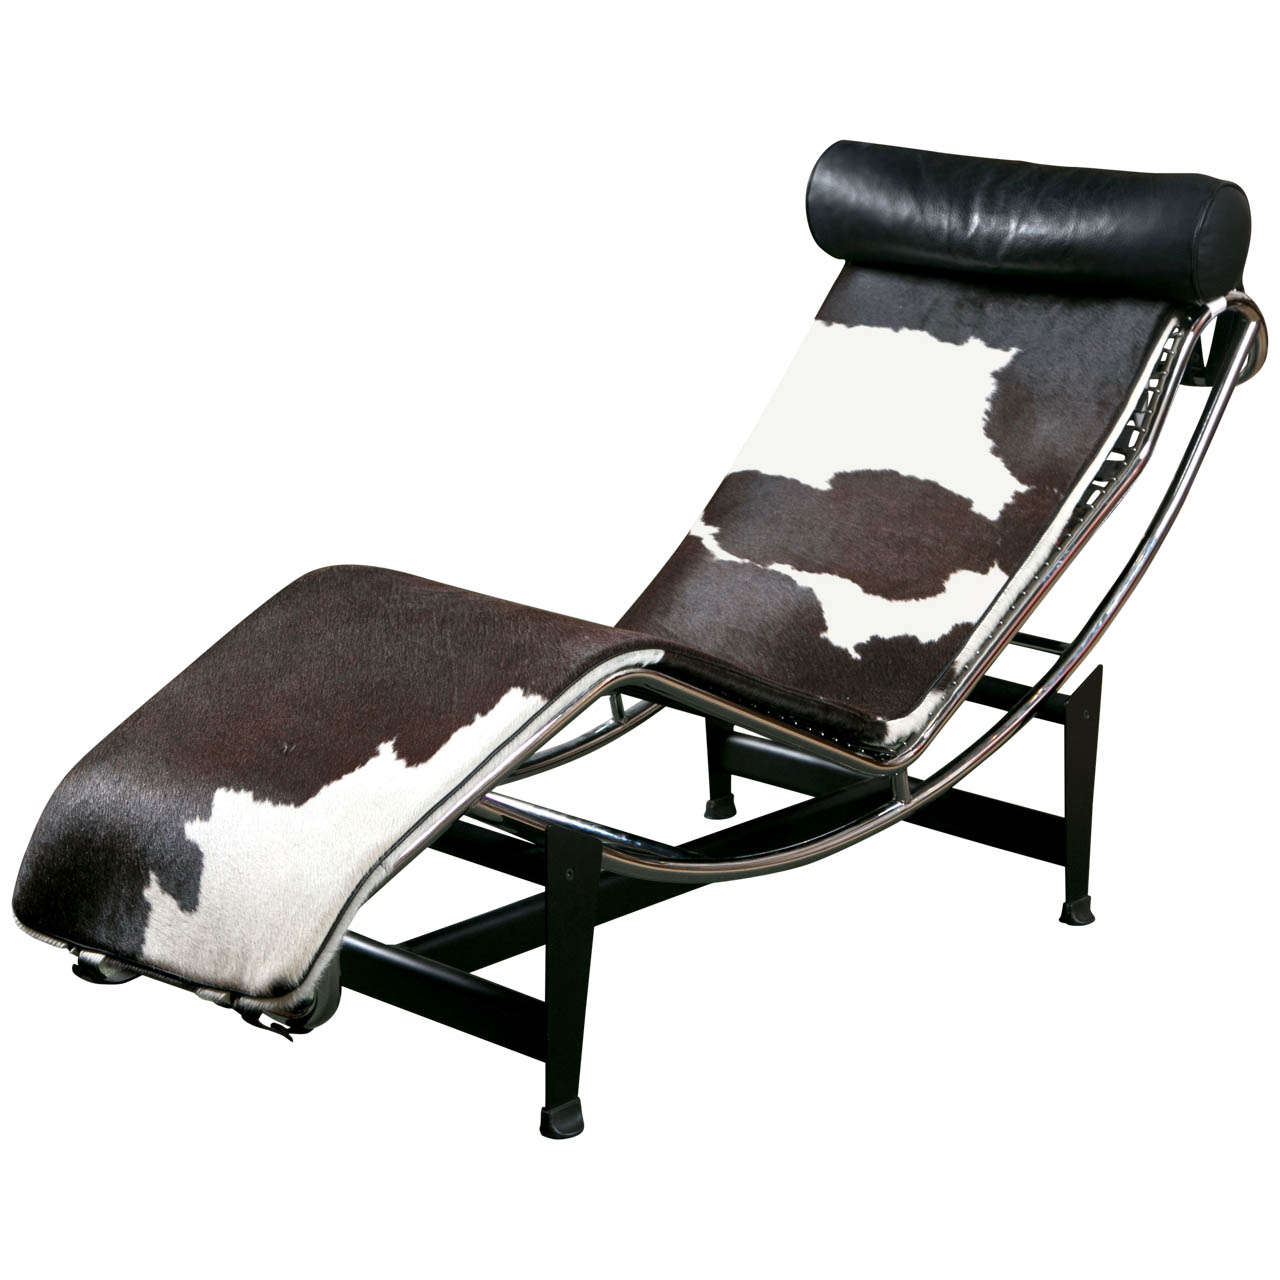 Le corbusier chaise longue at 1stdibs for Chaise lounge corbusier